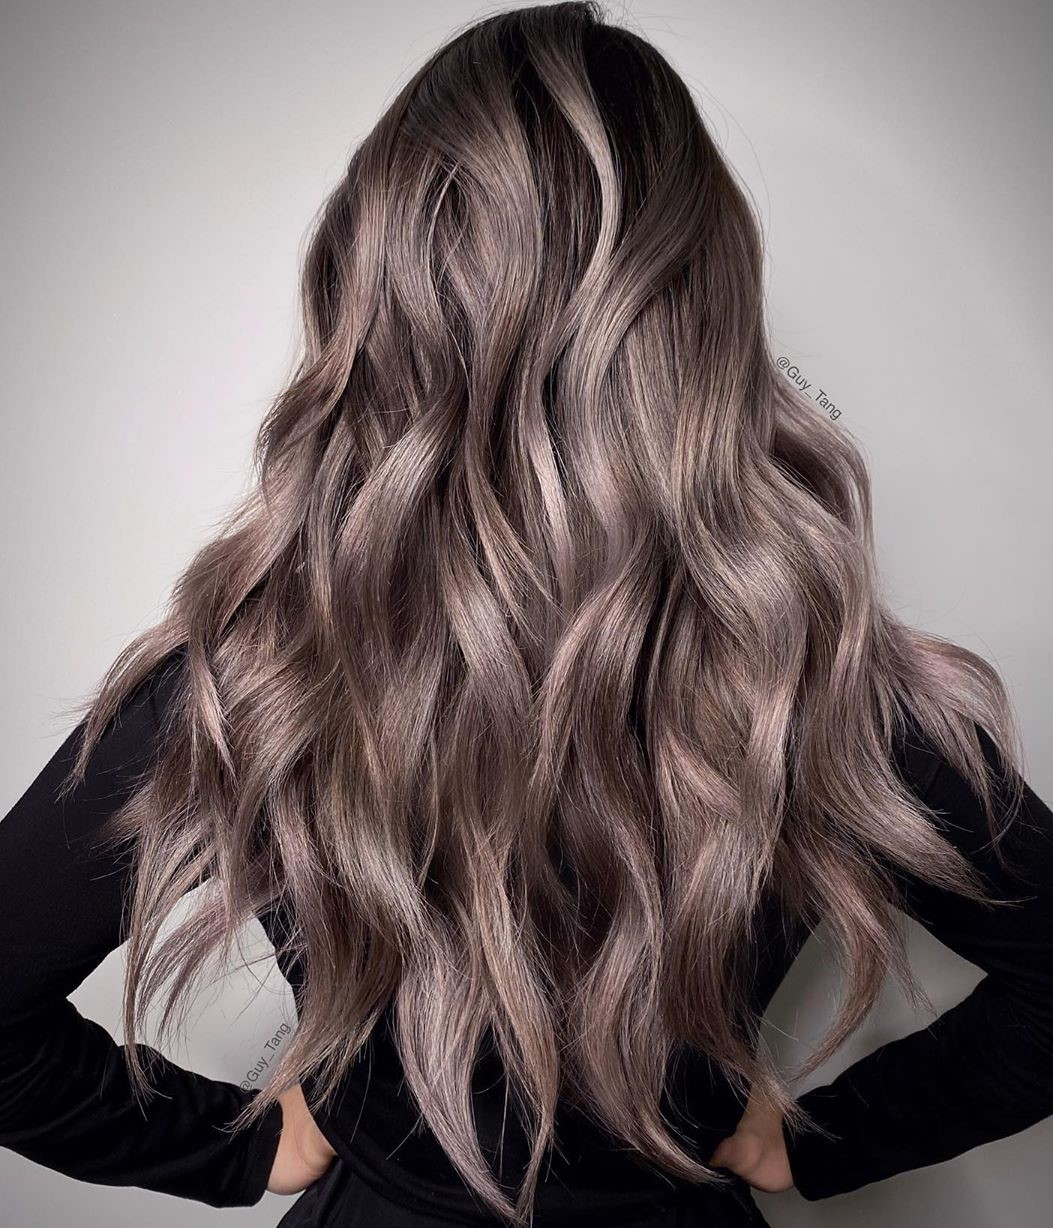 Rose Mauve Hair with Silver Highlights